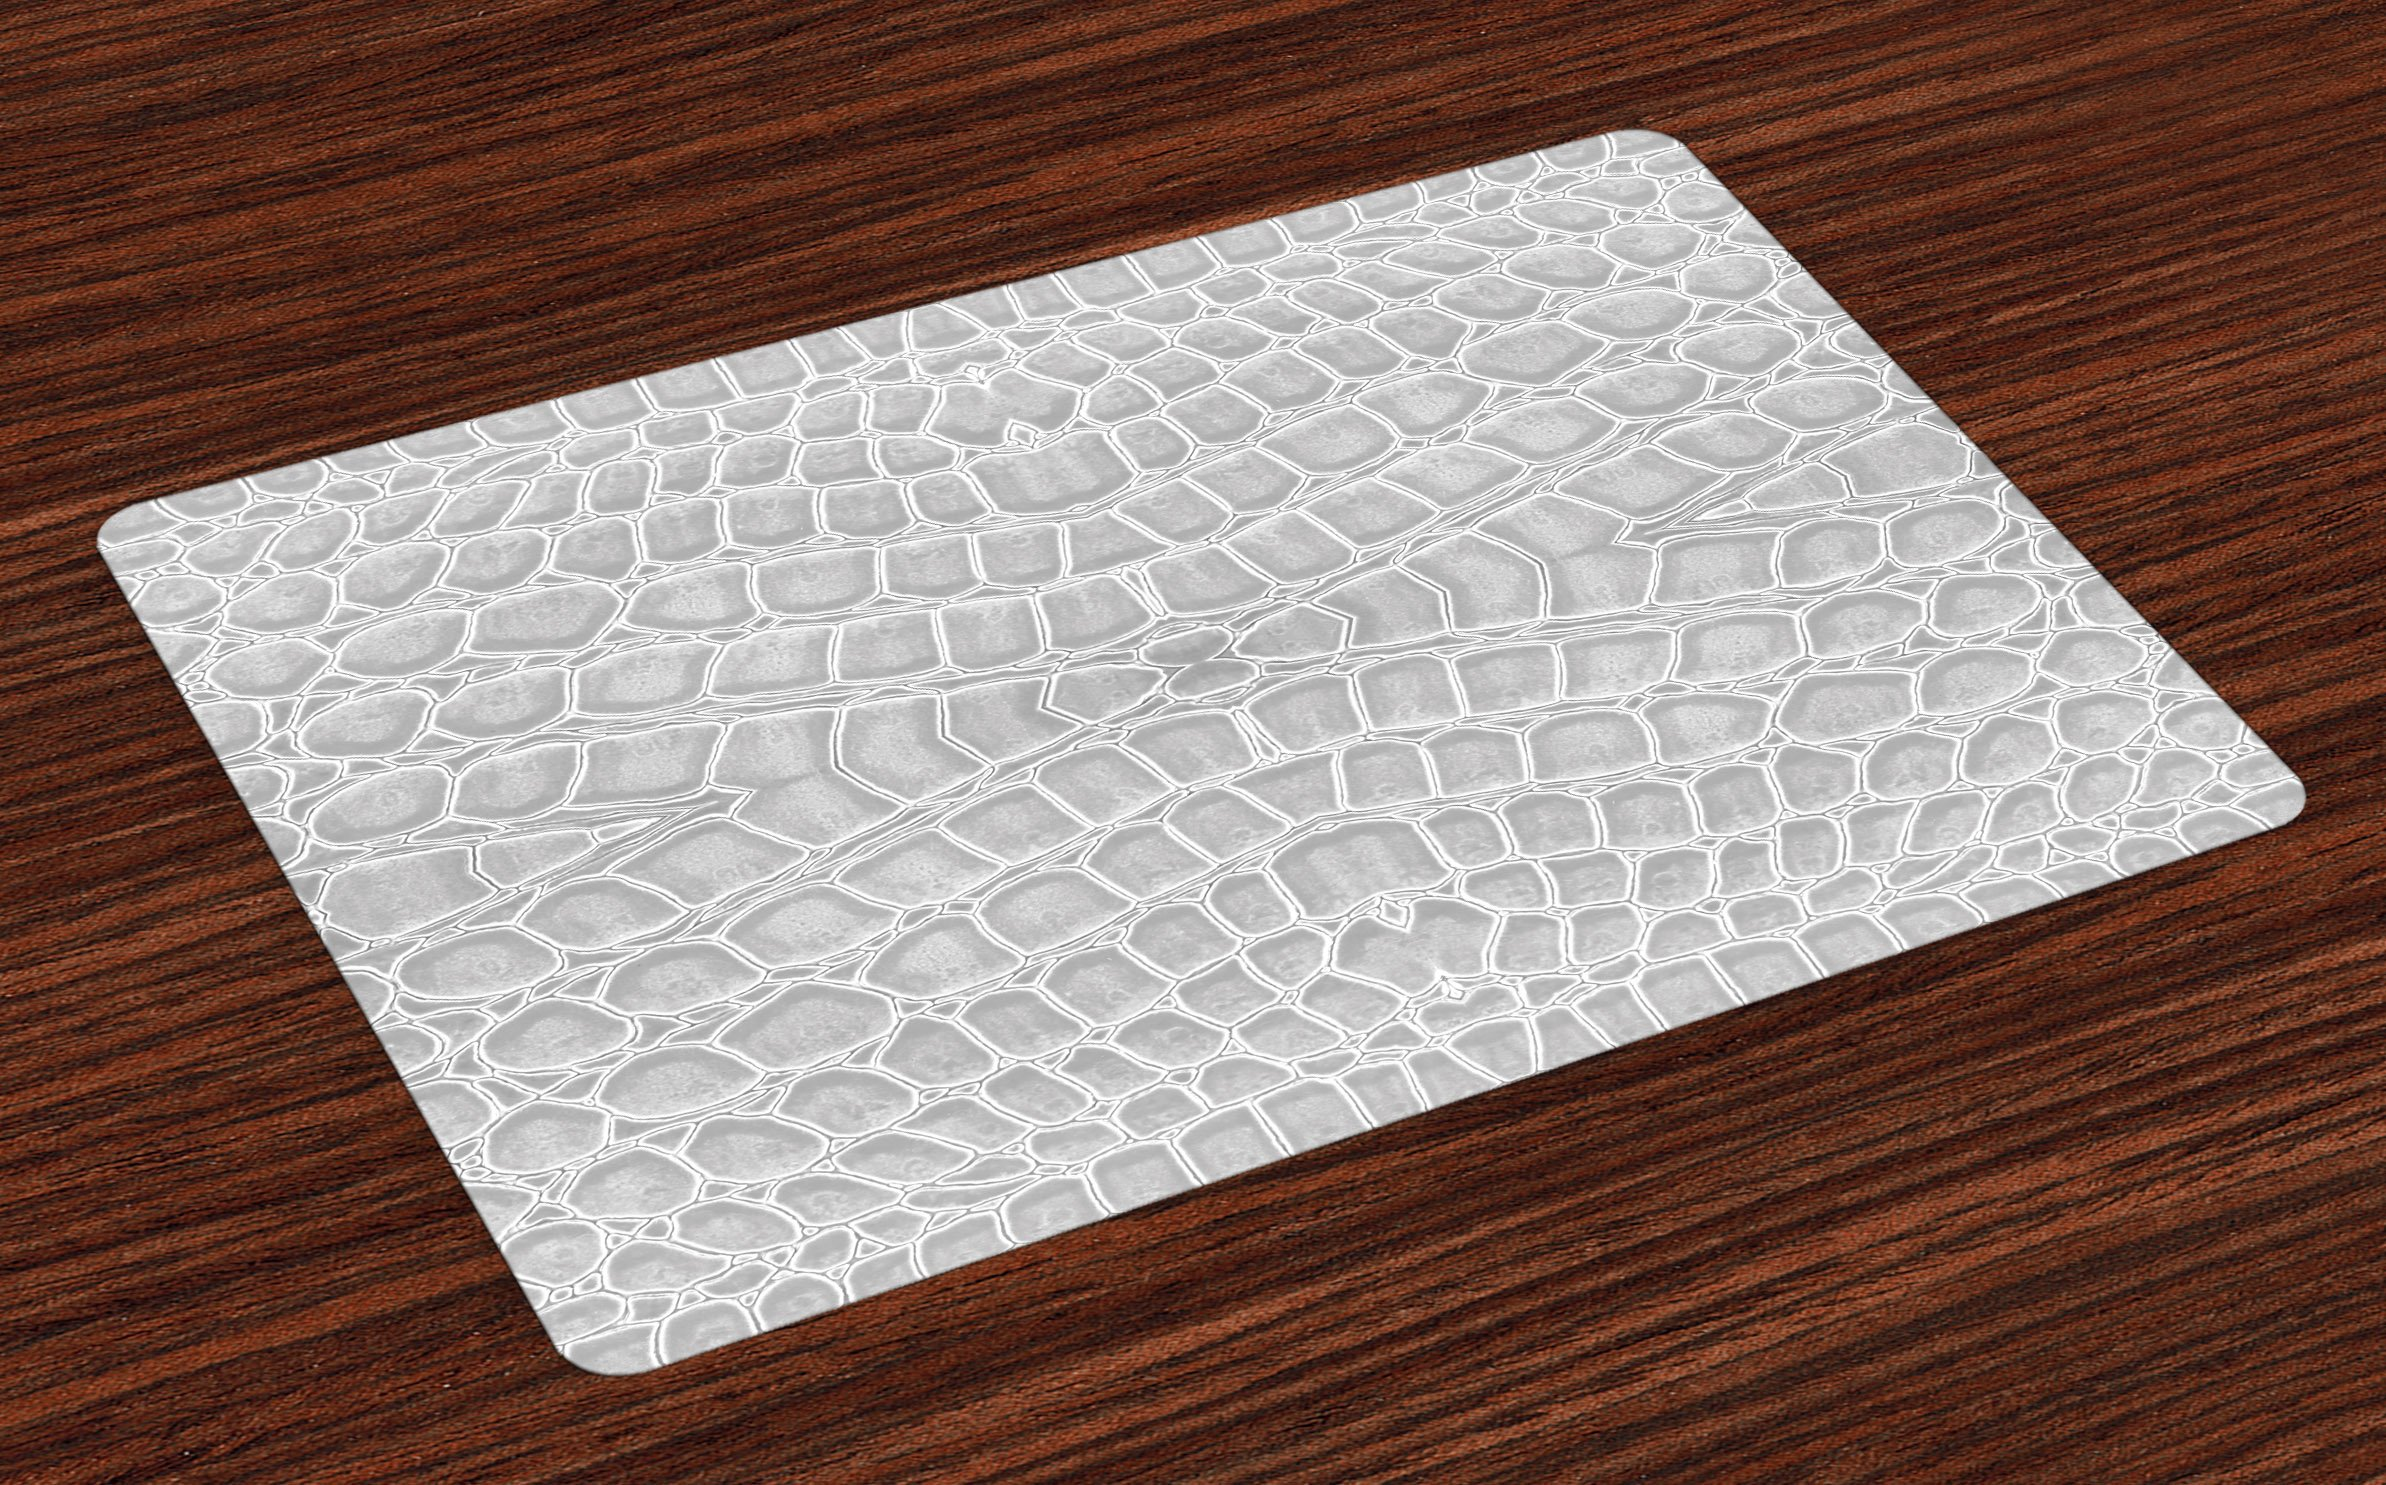 Lunarable Animal Print Place Mats Set of 4, Crocodile Leather Pattern in Material Fashion Theme Design Print, Washable Fabric Placemats for Dining Room Kitchen Table Decoration, Pale Gray